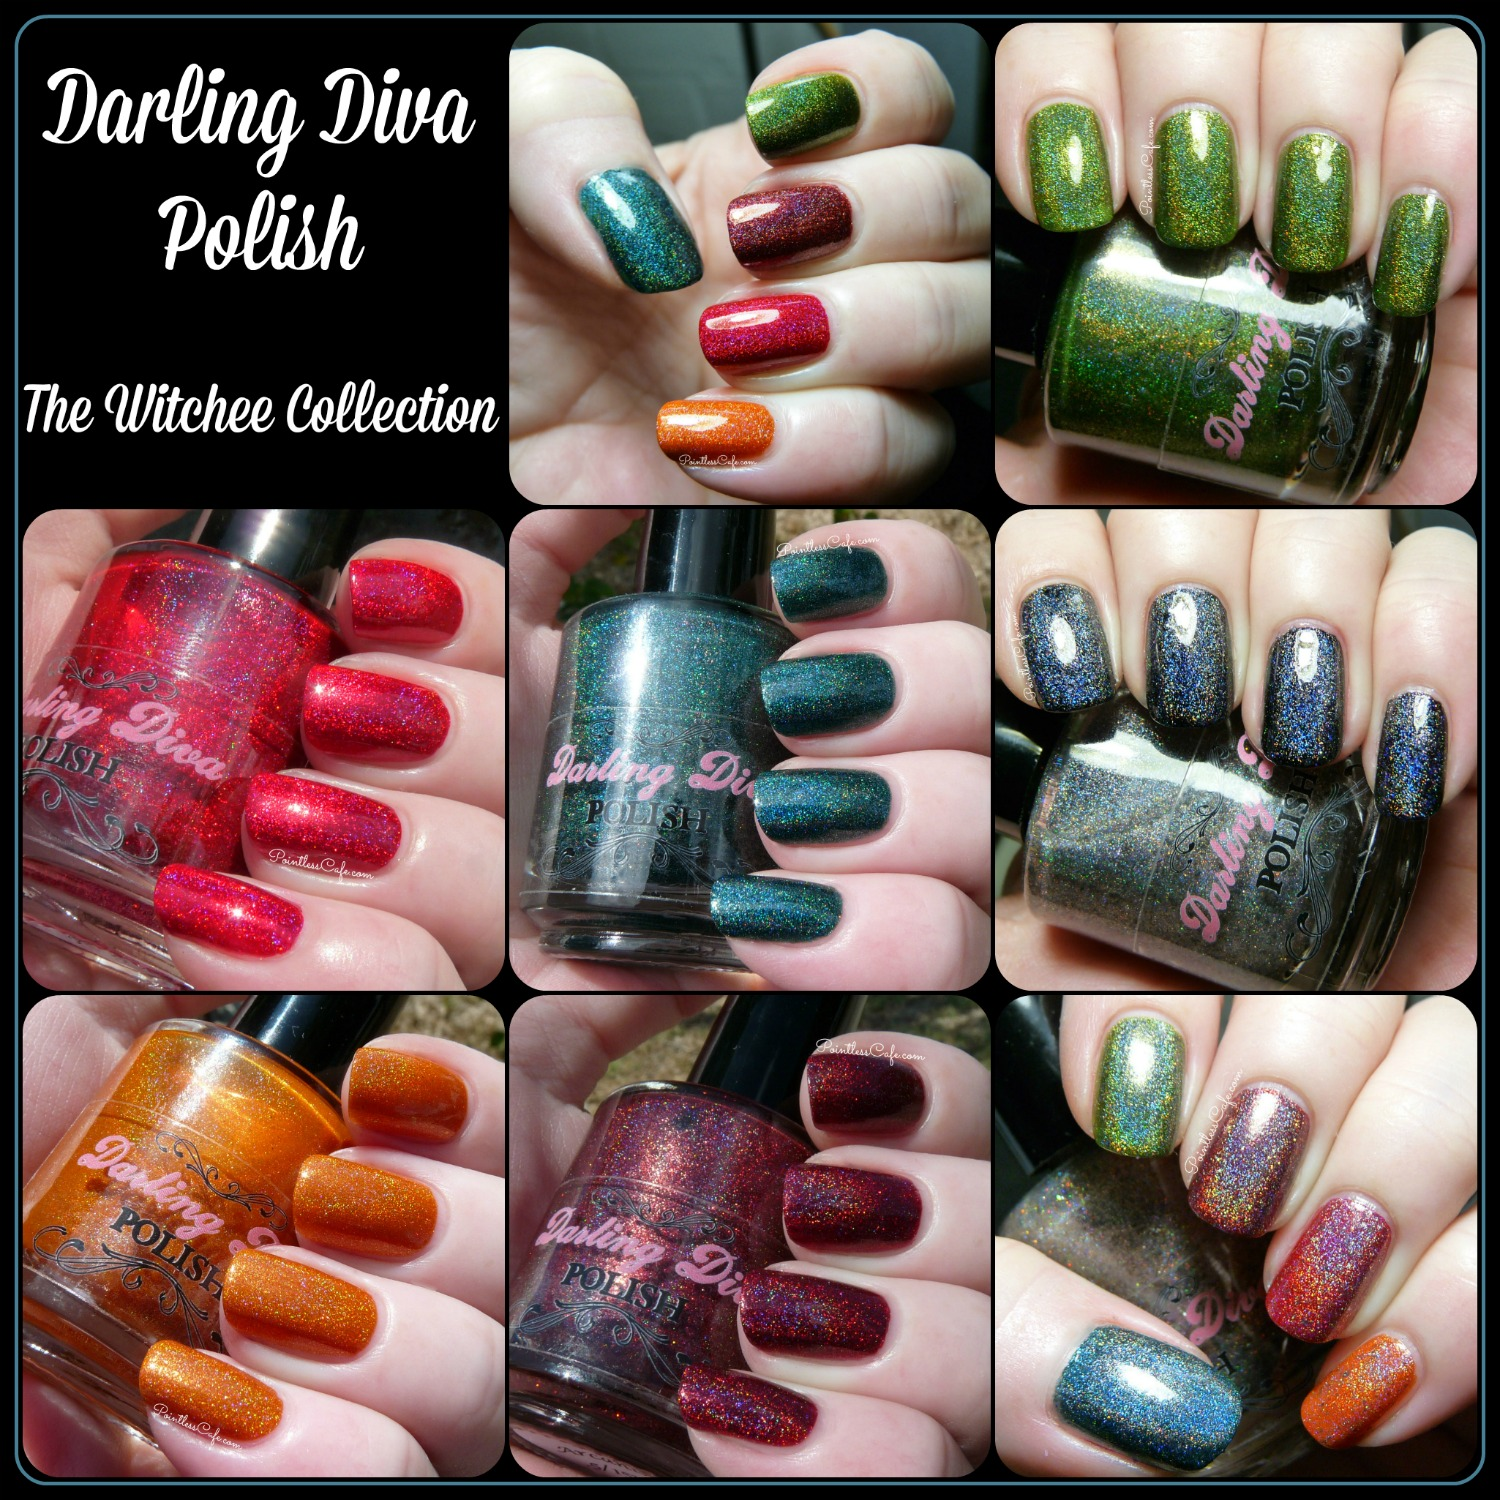 Darling Diva Polish: The Witchee Collection - Fall 2014 | Pointless Cafe